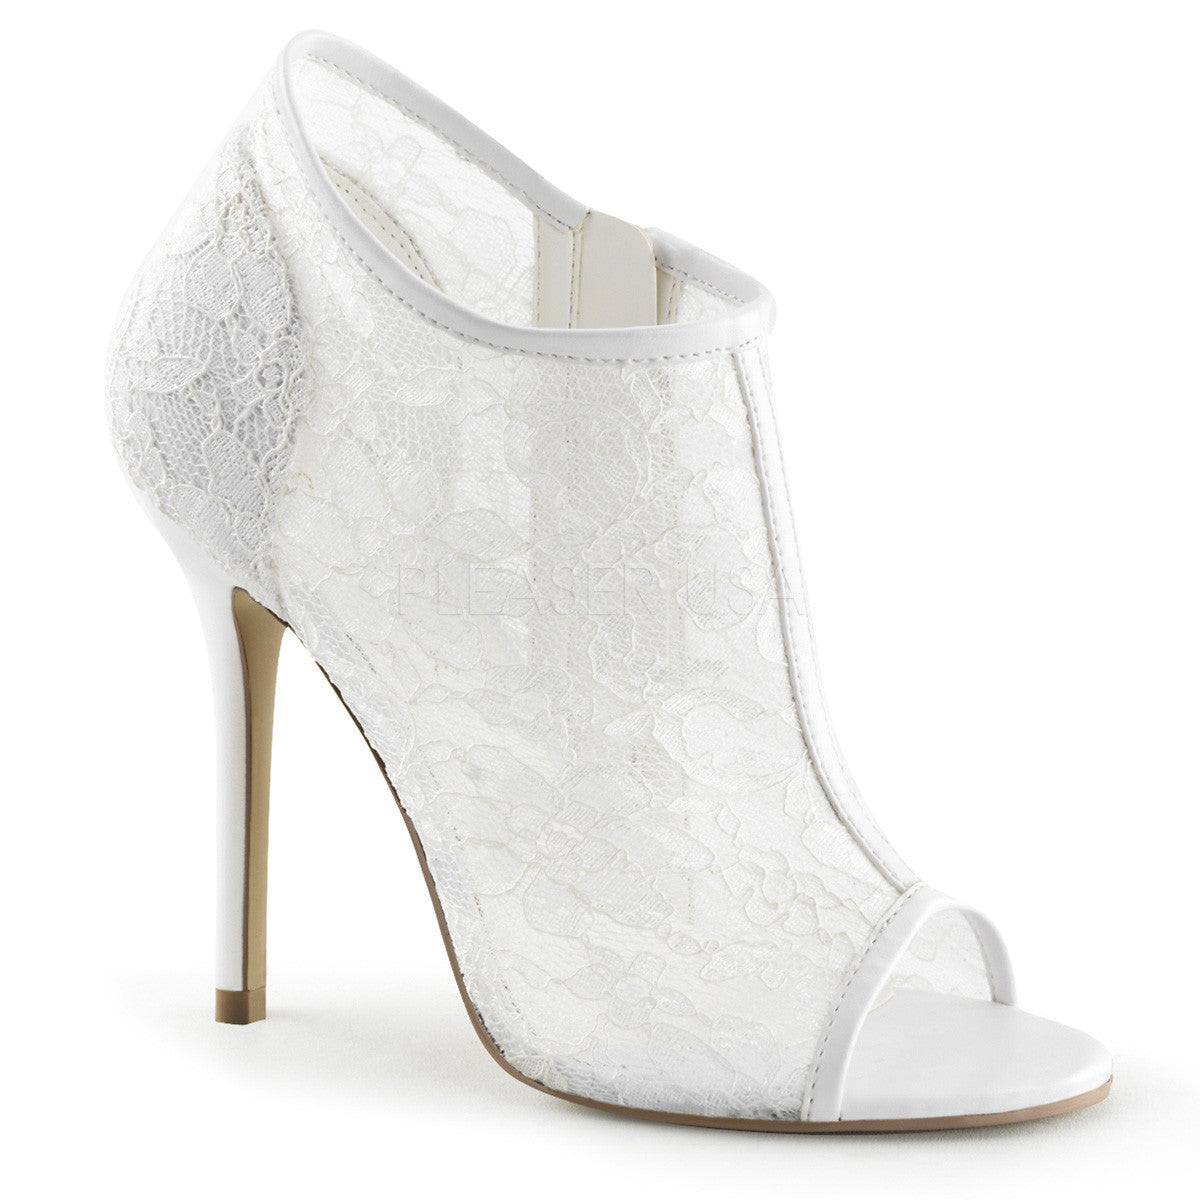 FABULICIOUS AMUSE-56 Ivory Lace-Mesh Ankle Boots - Shoecup.com - 1